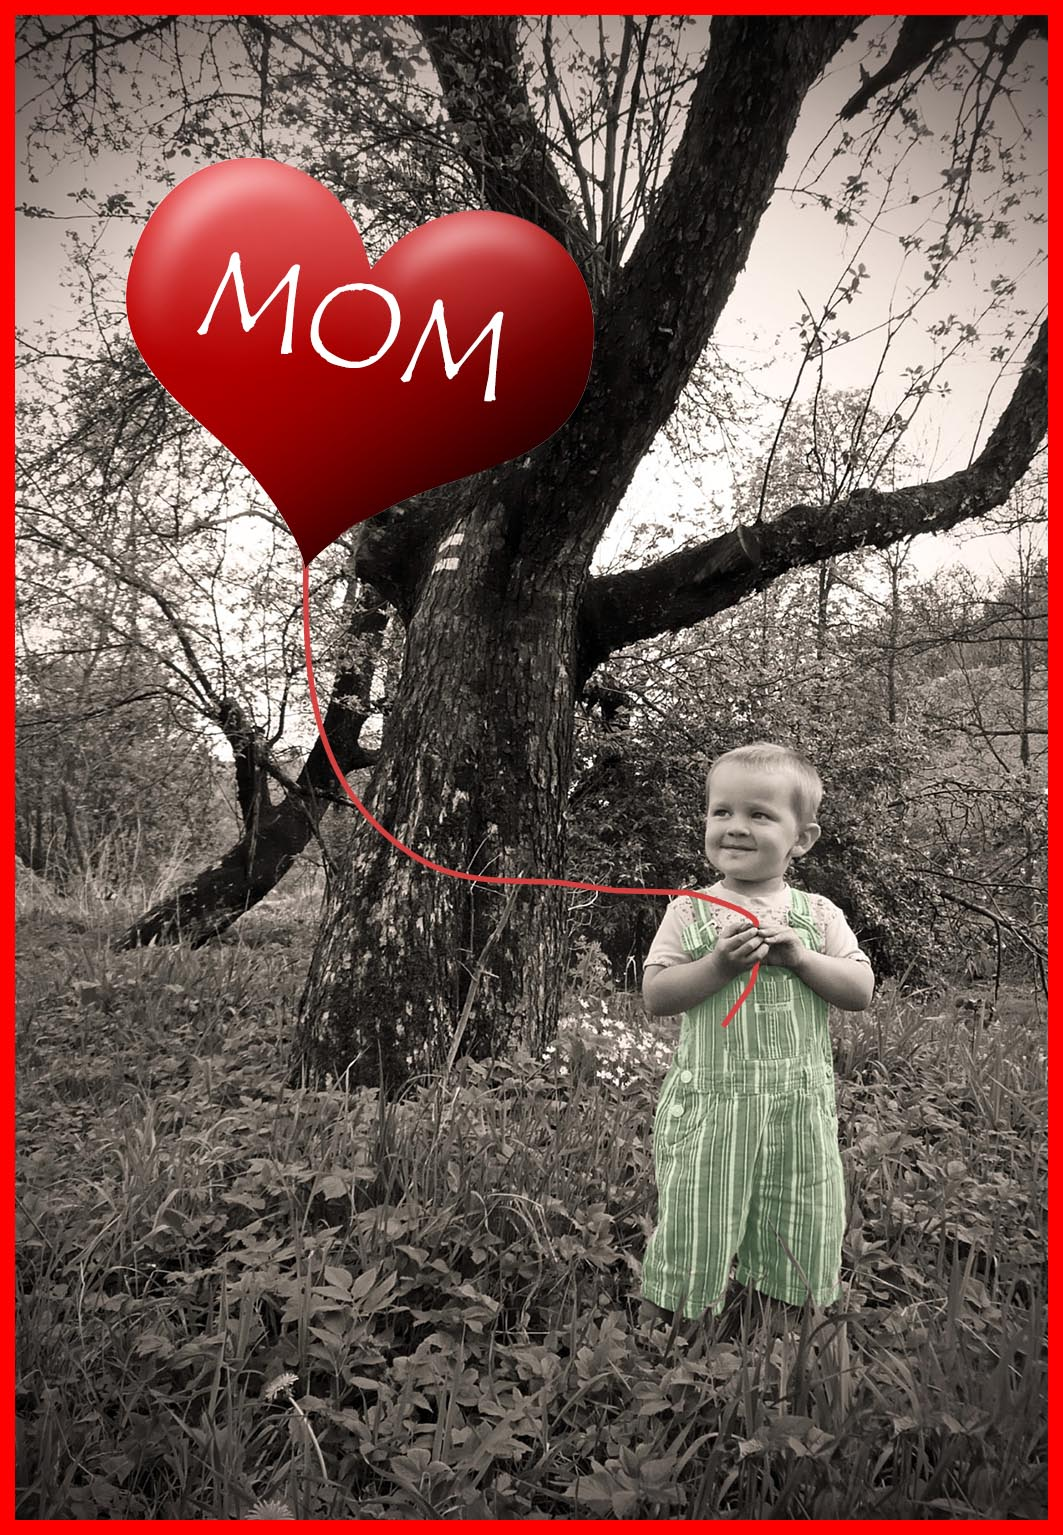 mothers-day-card-boy-red-heart